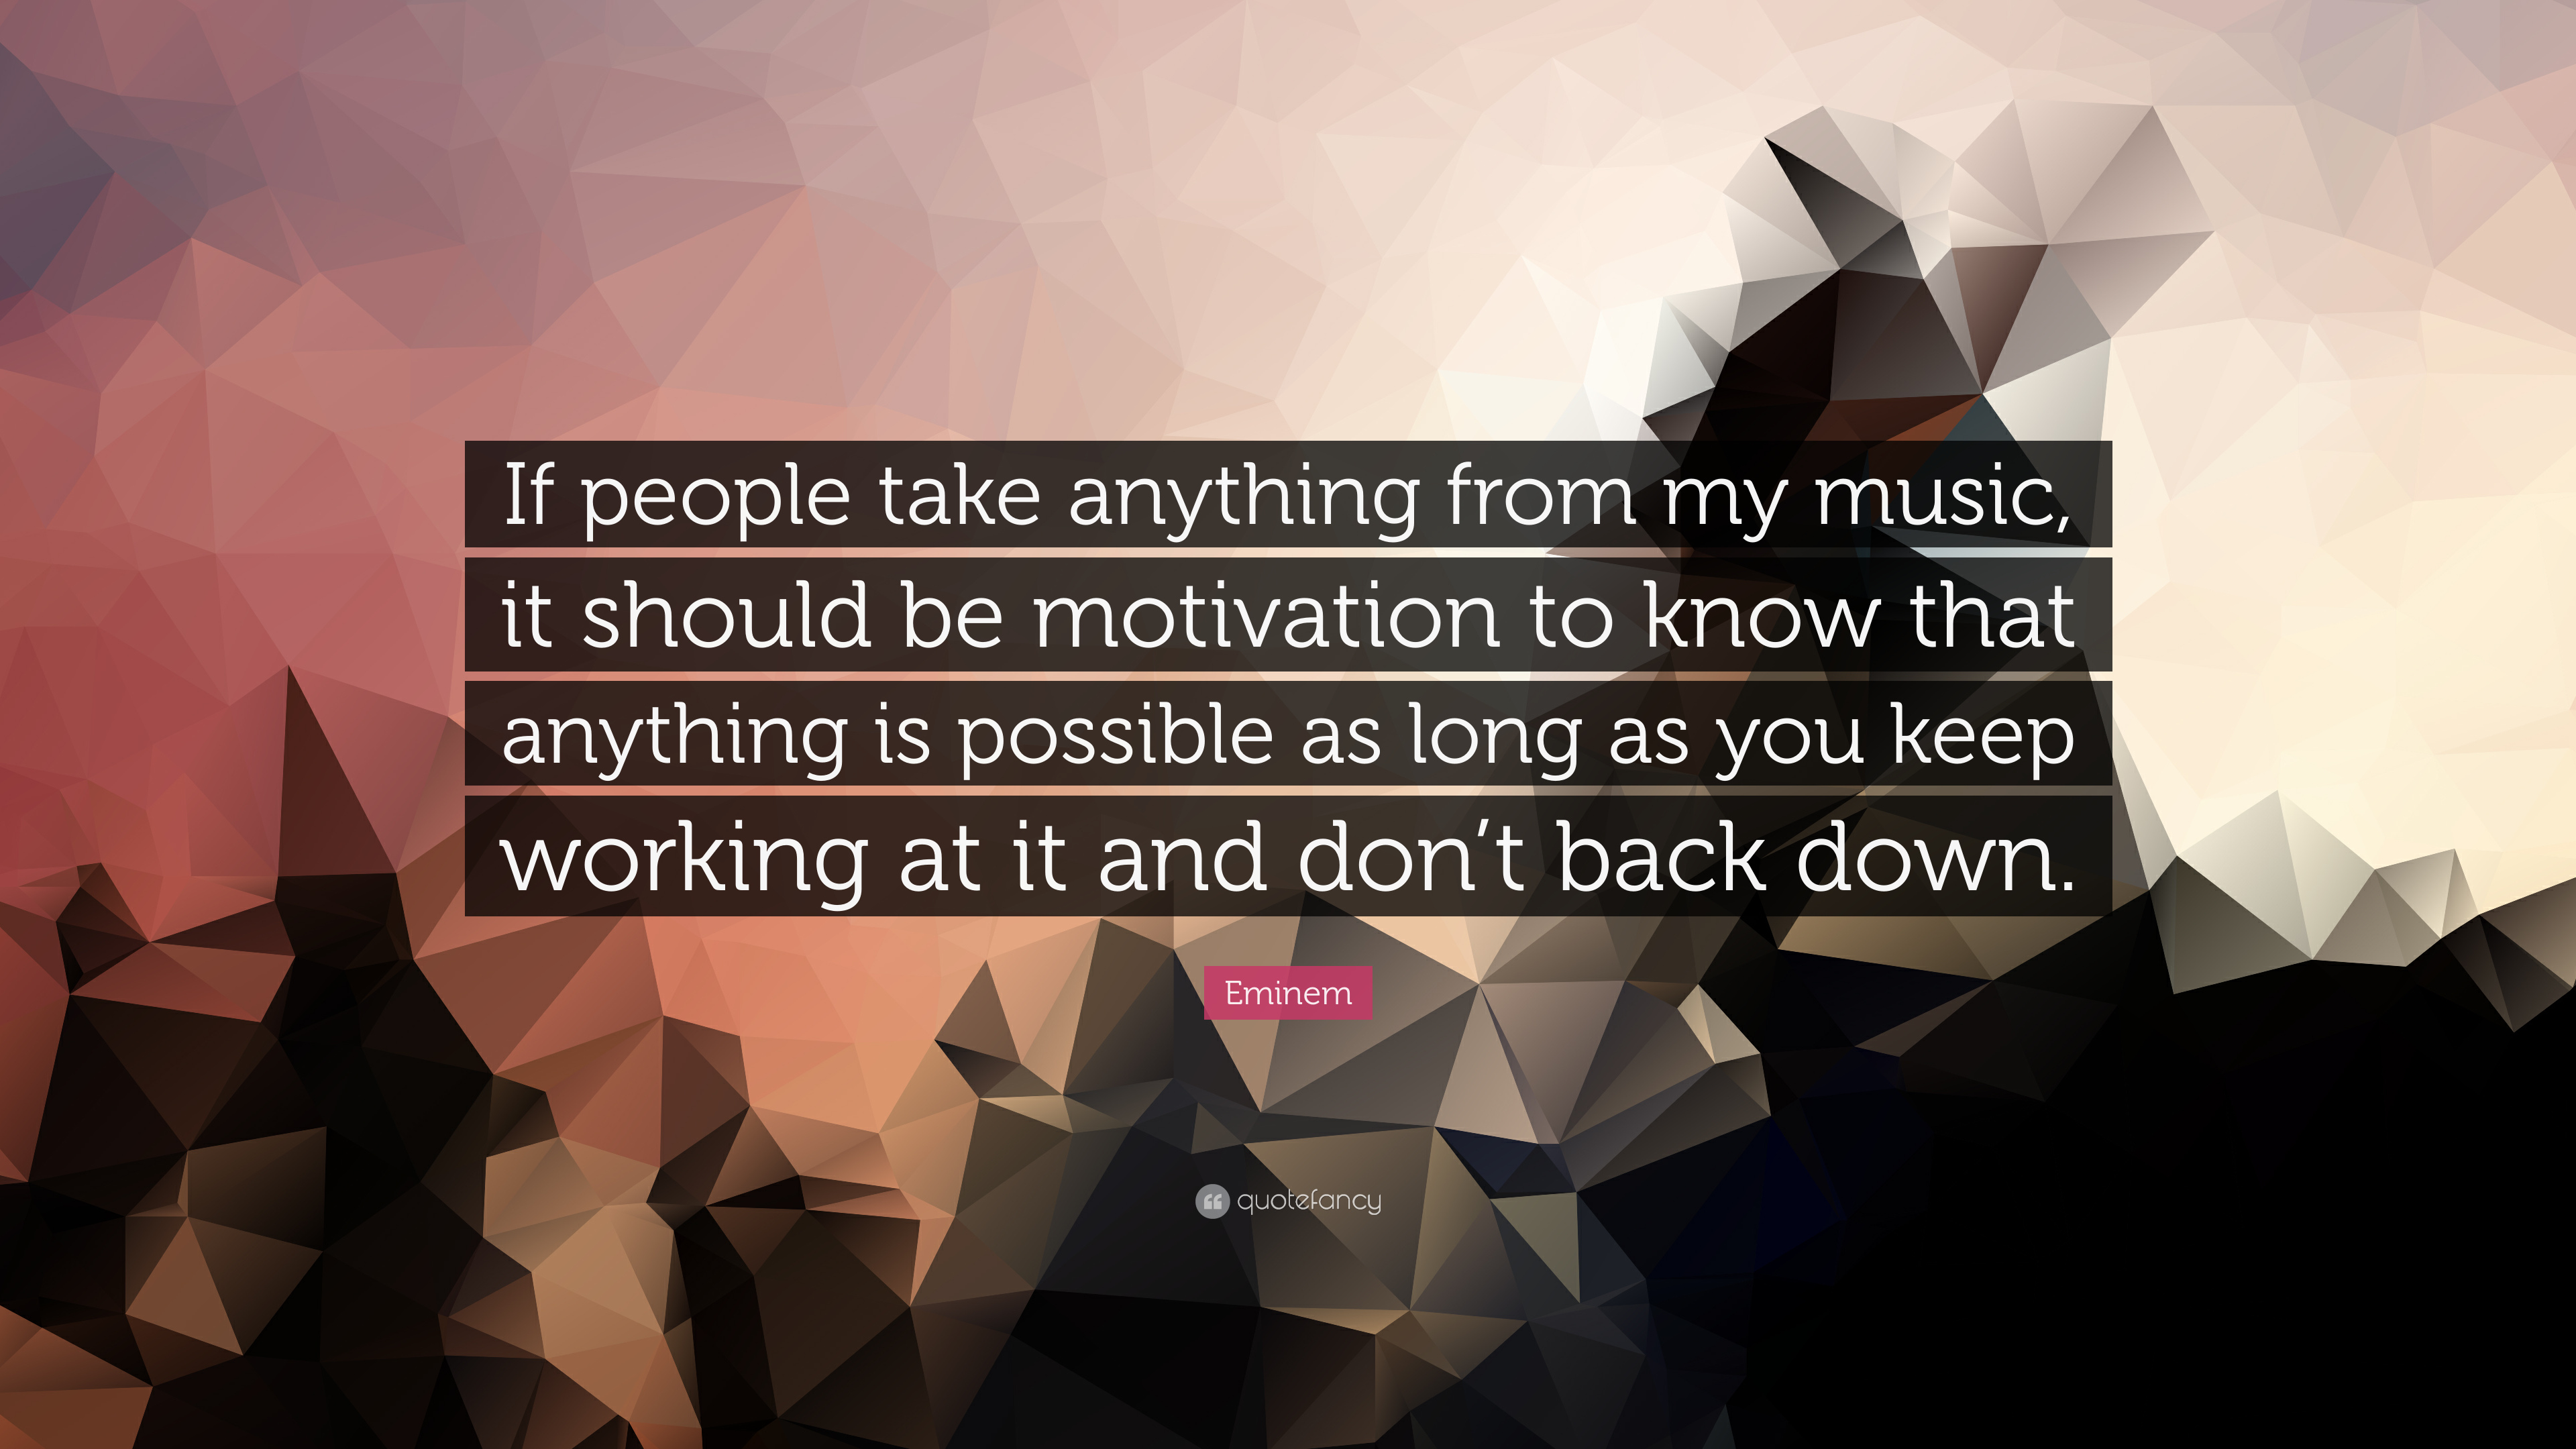 Top Wallpaper Music Motivation - 4890103-Eminem-Quote-If-people-take-anything-from-my-music-it-should-be  Snapshot_77641.jpg